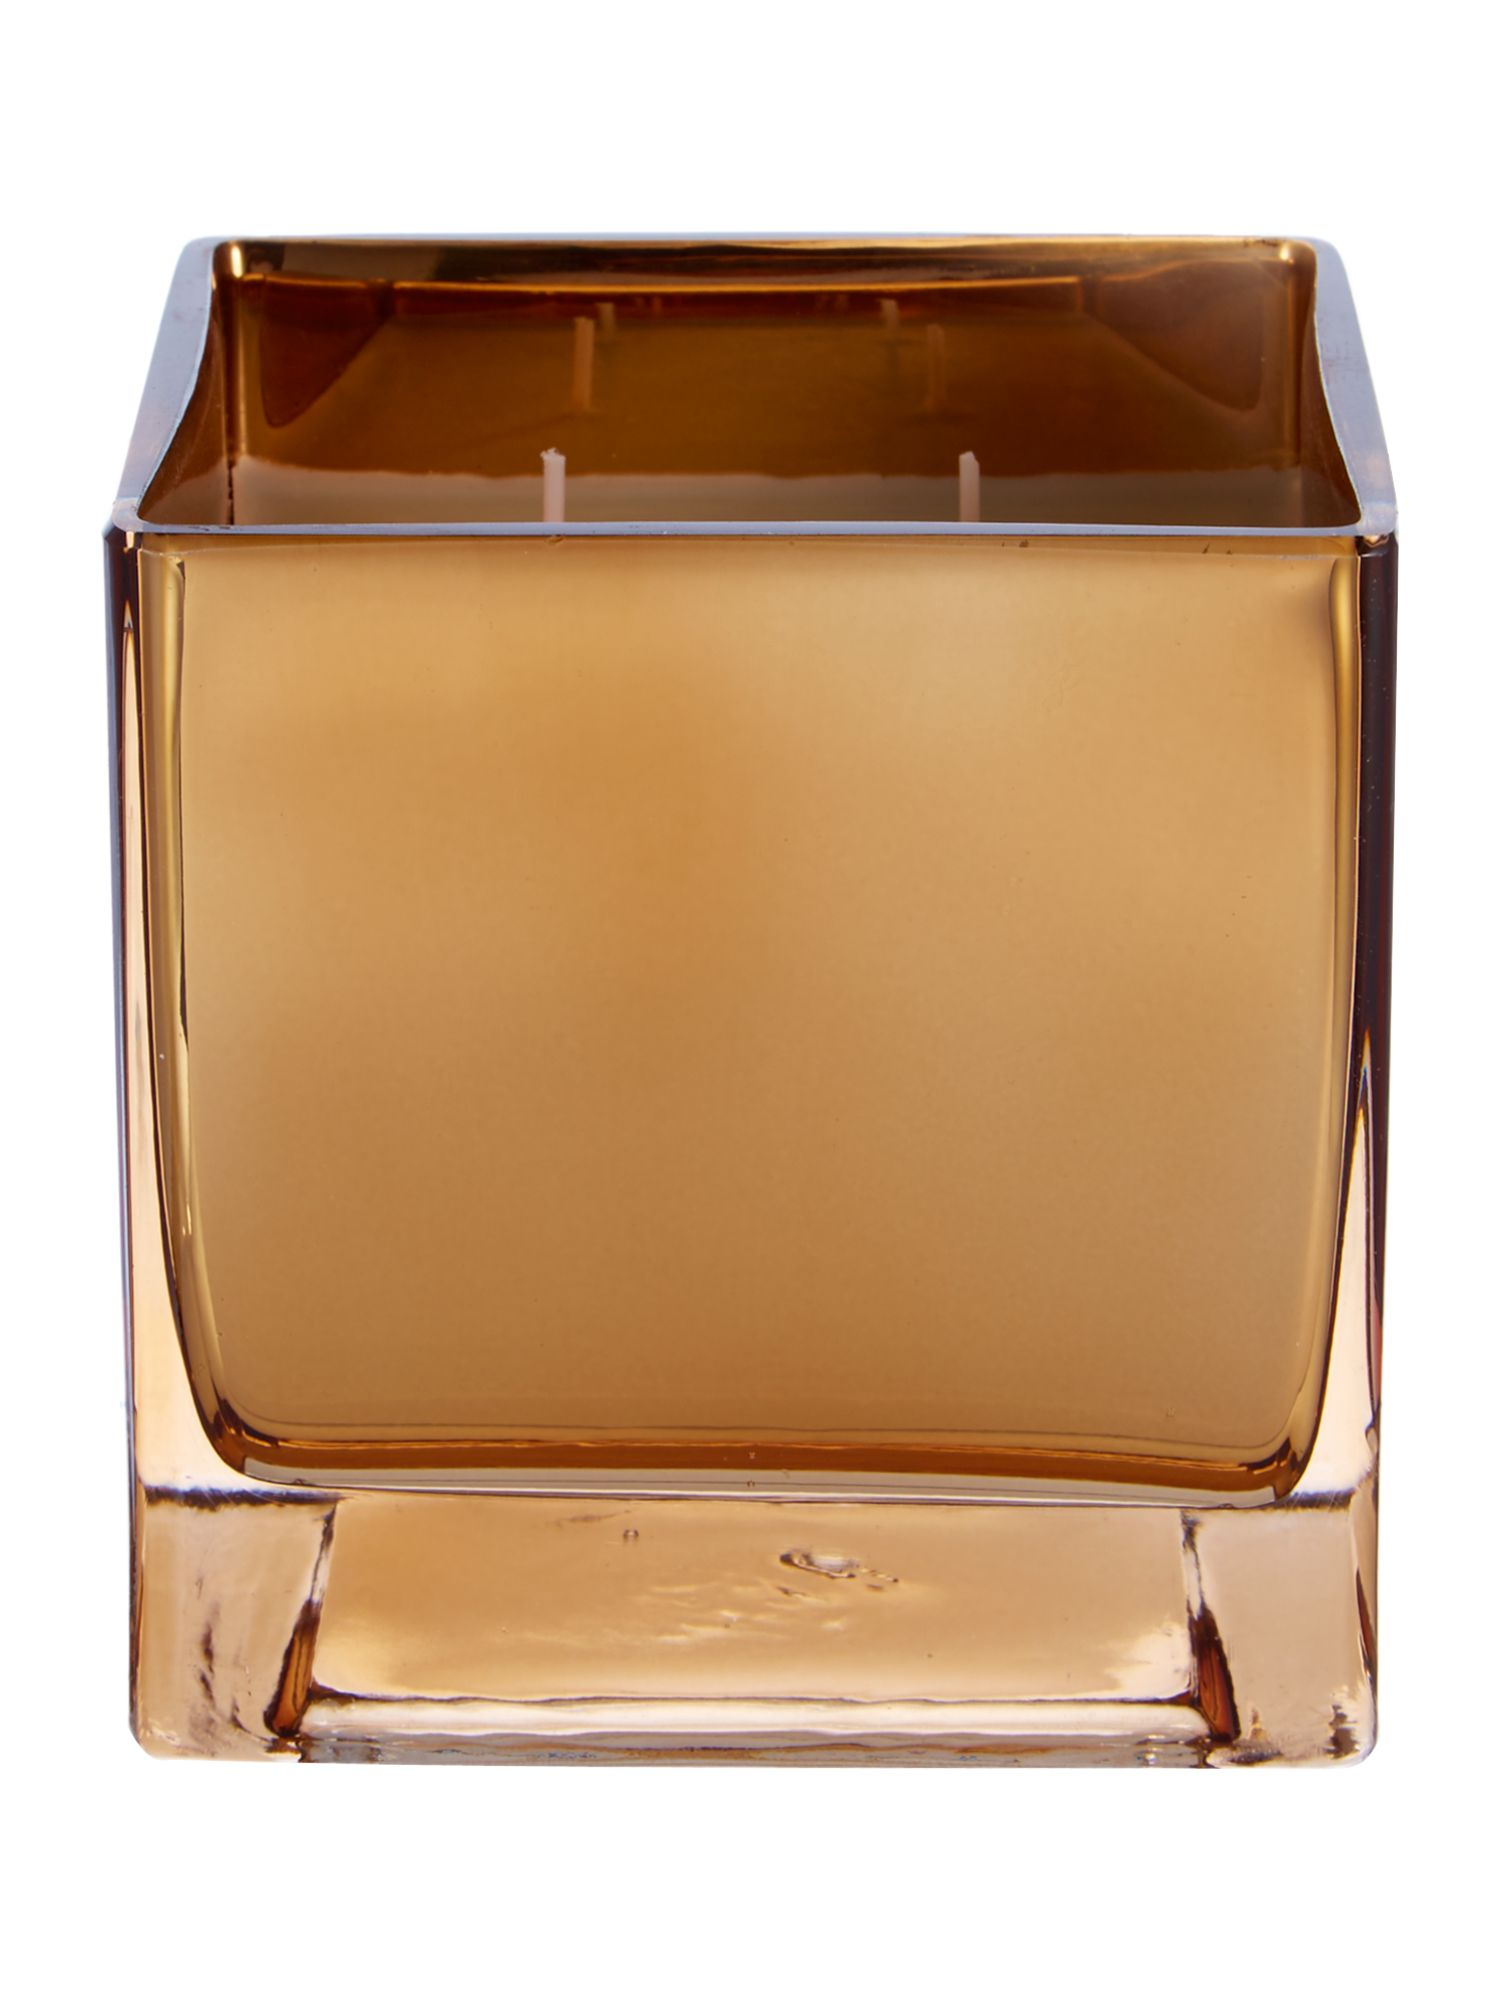 Luxury Hotel Collection Luxury Hotel Collection Amber Large 4 wick Candle